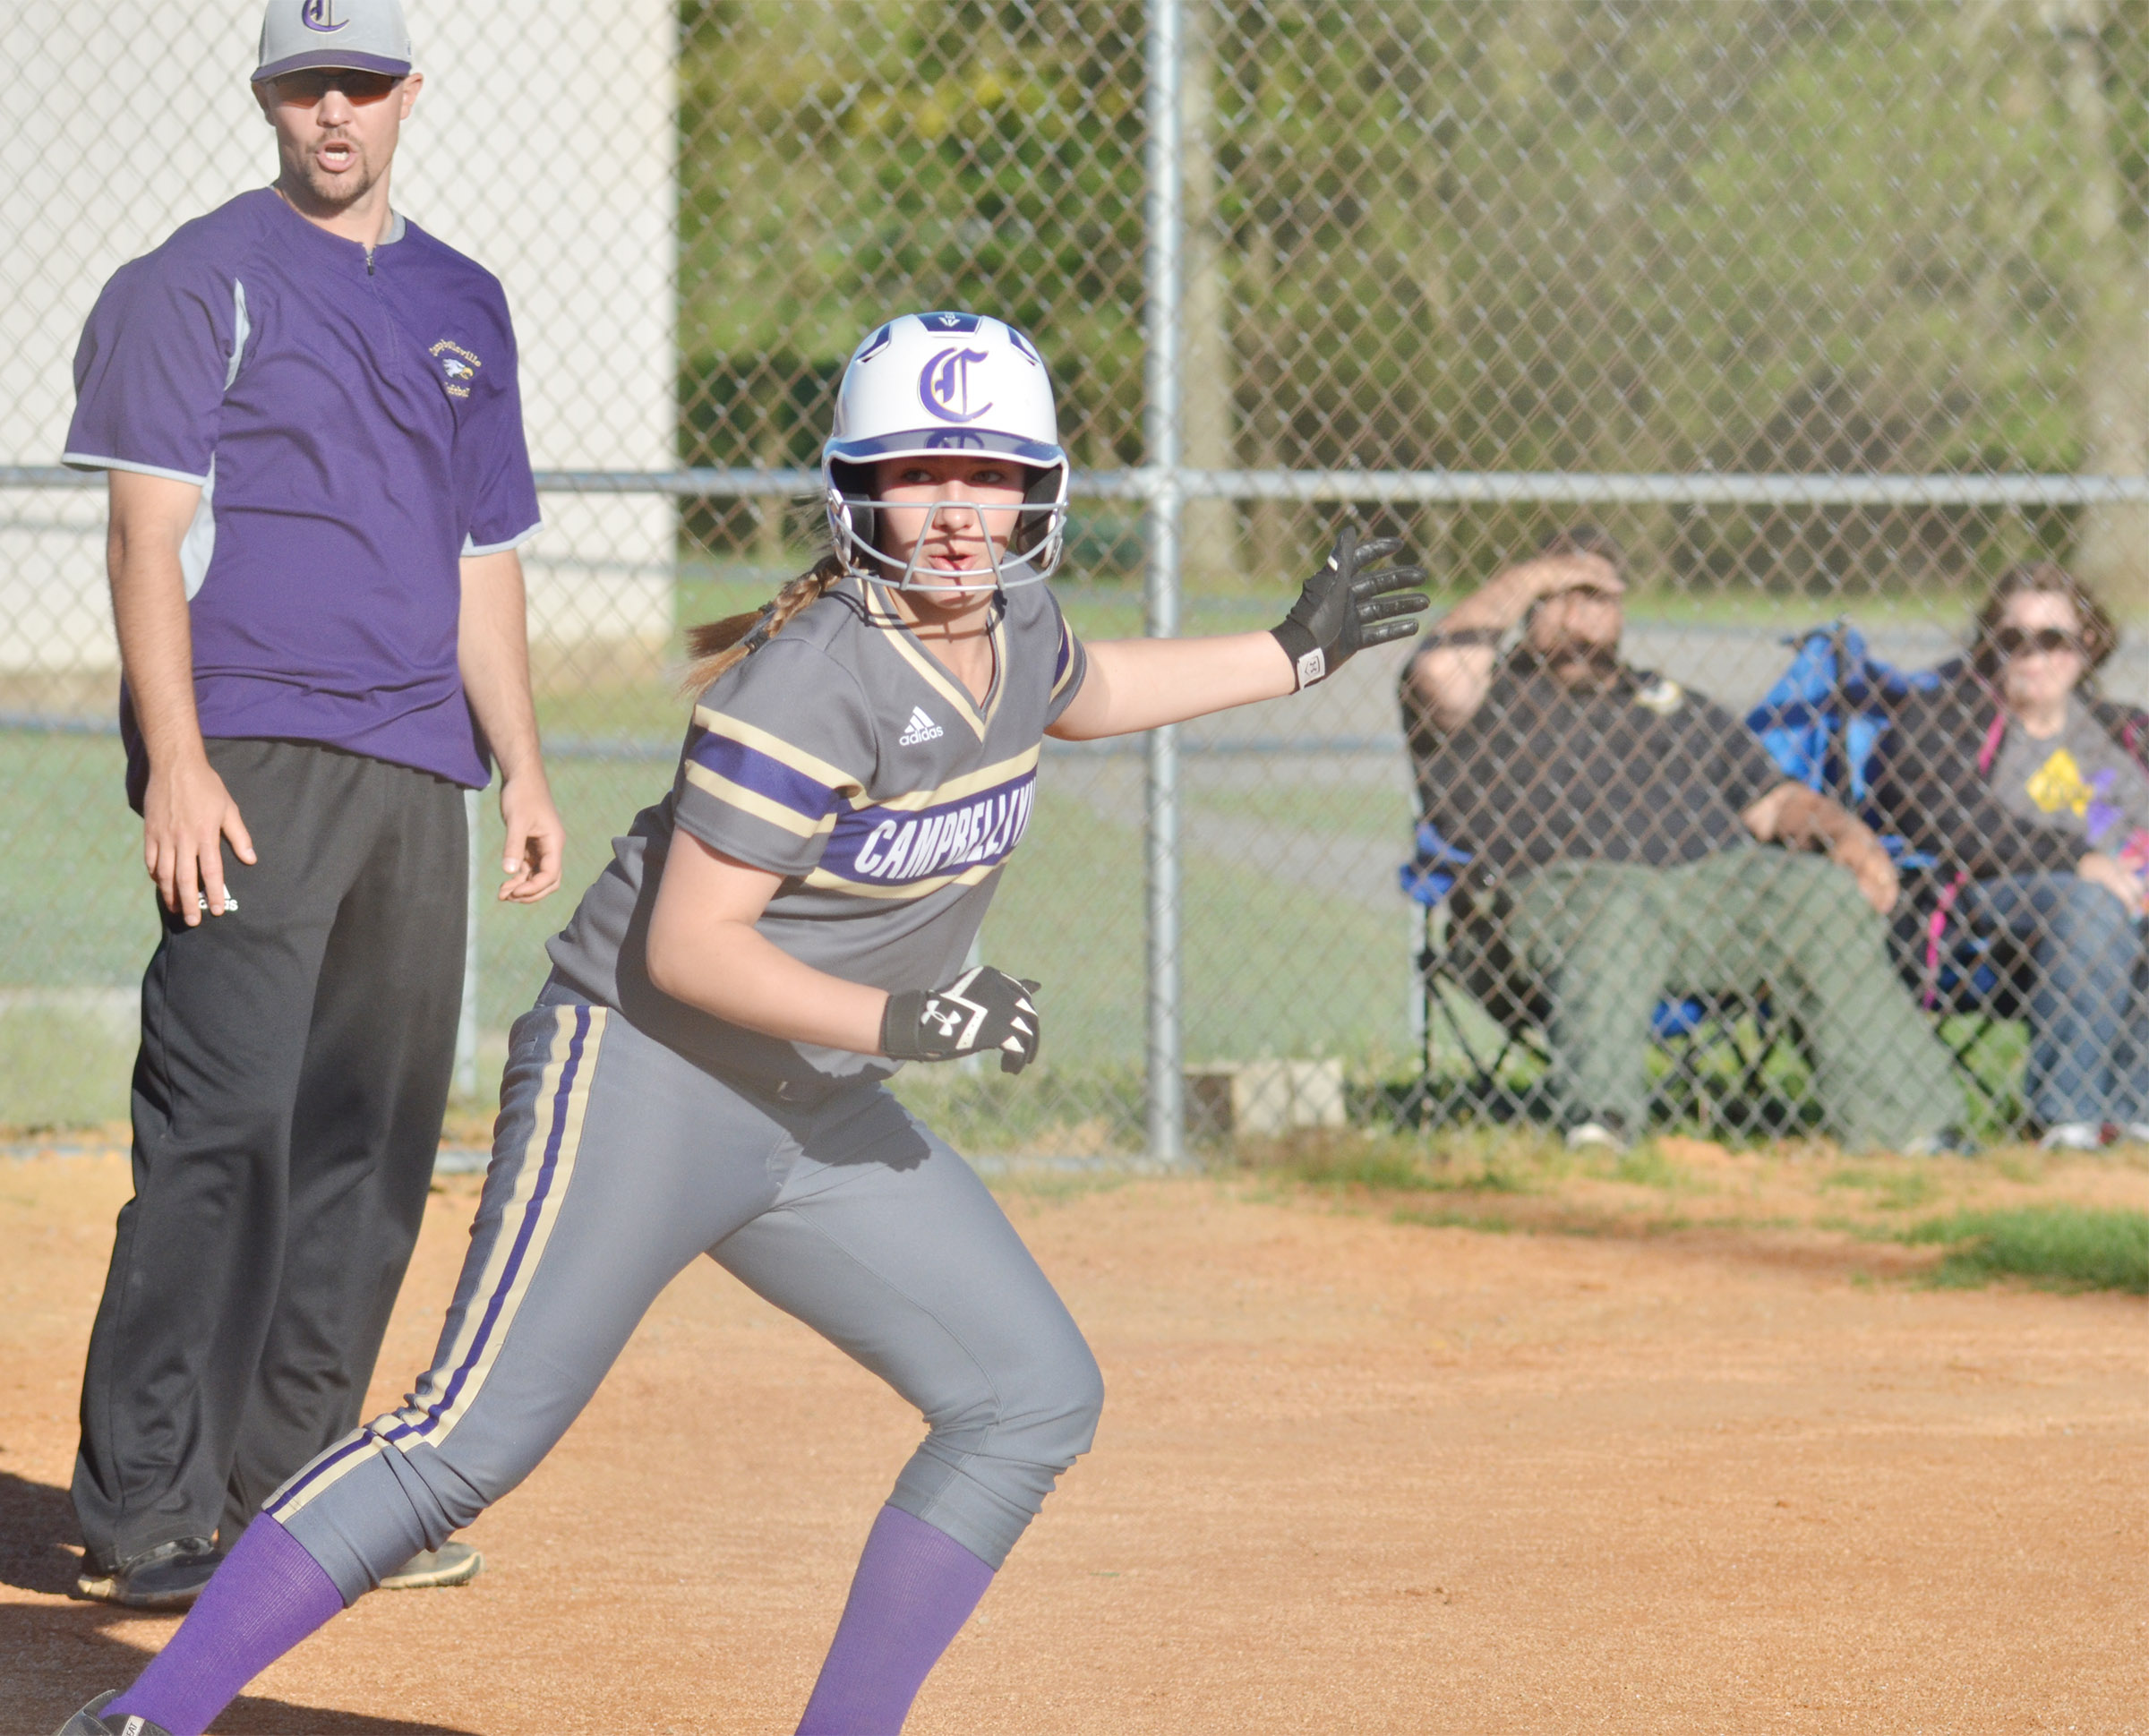 Campbellsville Middle School eighth-grader Abi Wiedewitsch heads back to third after Danville players try to get her out.